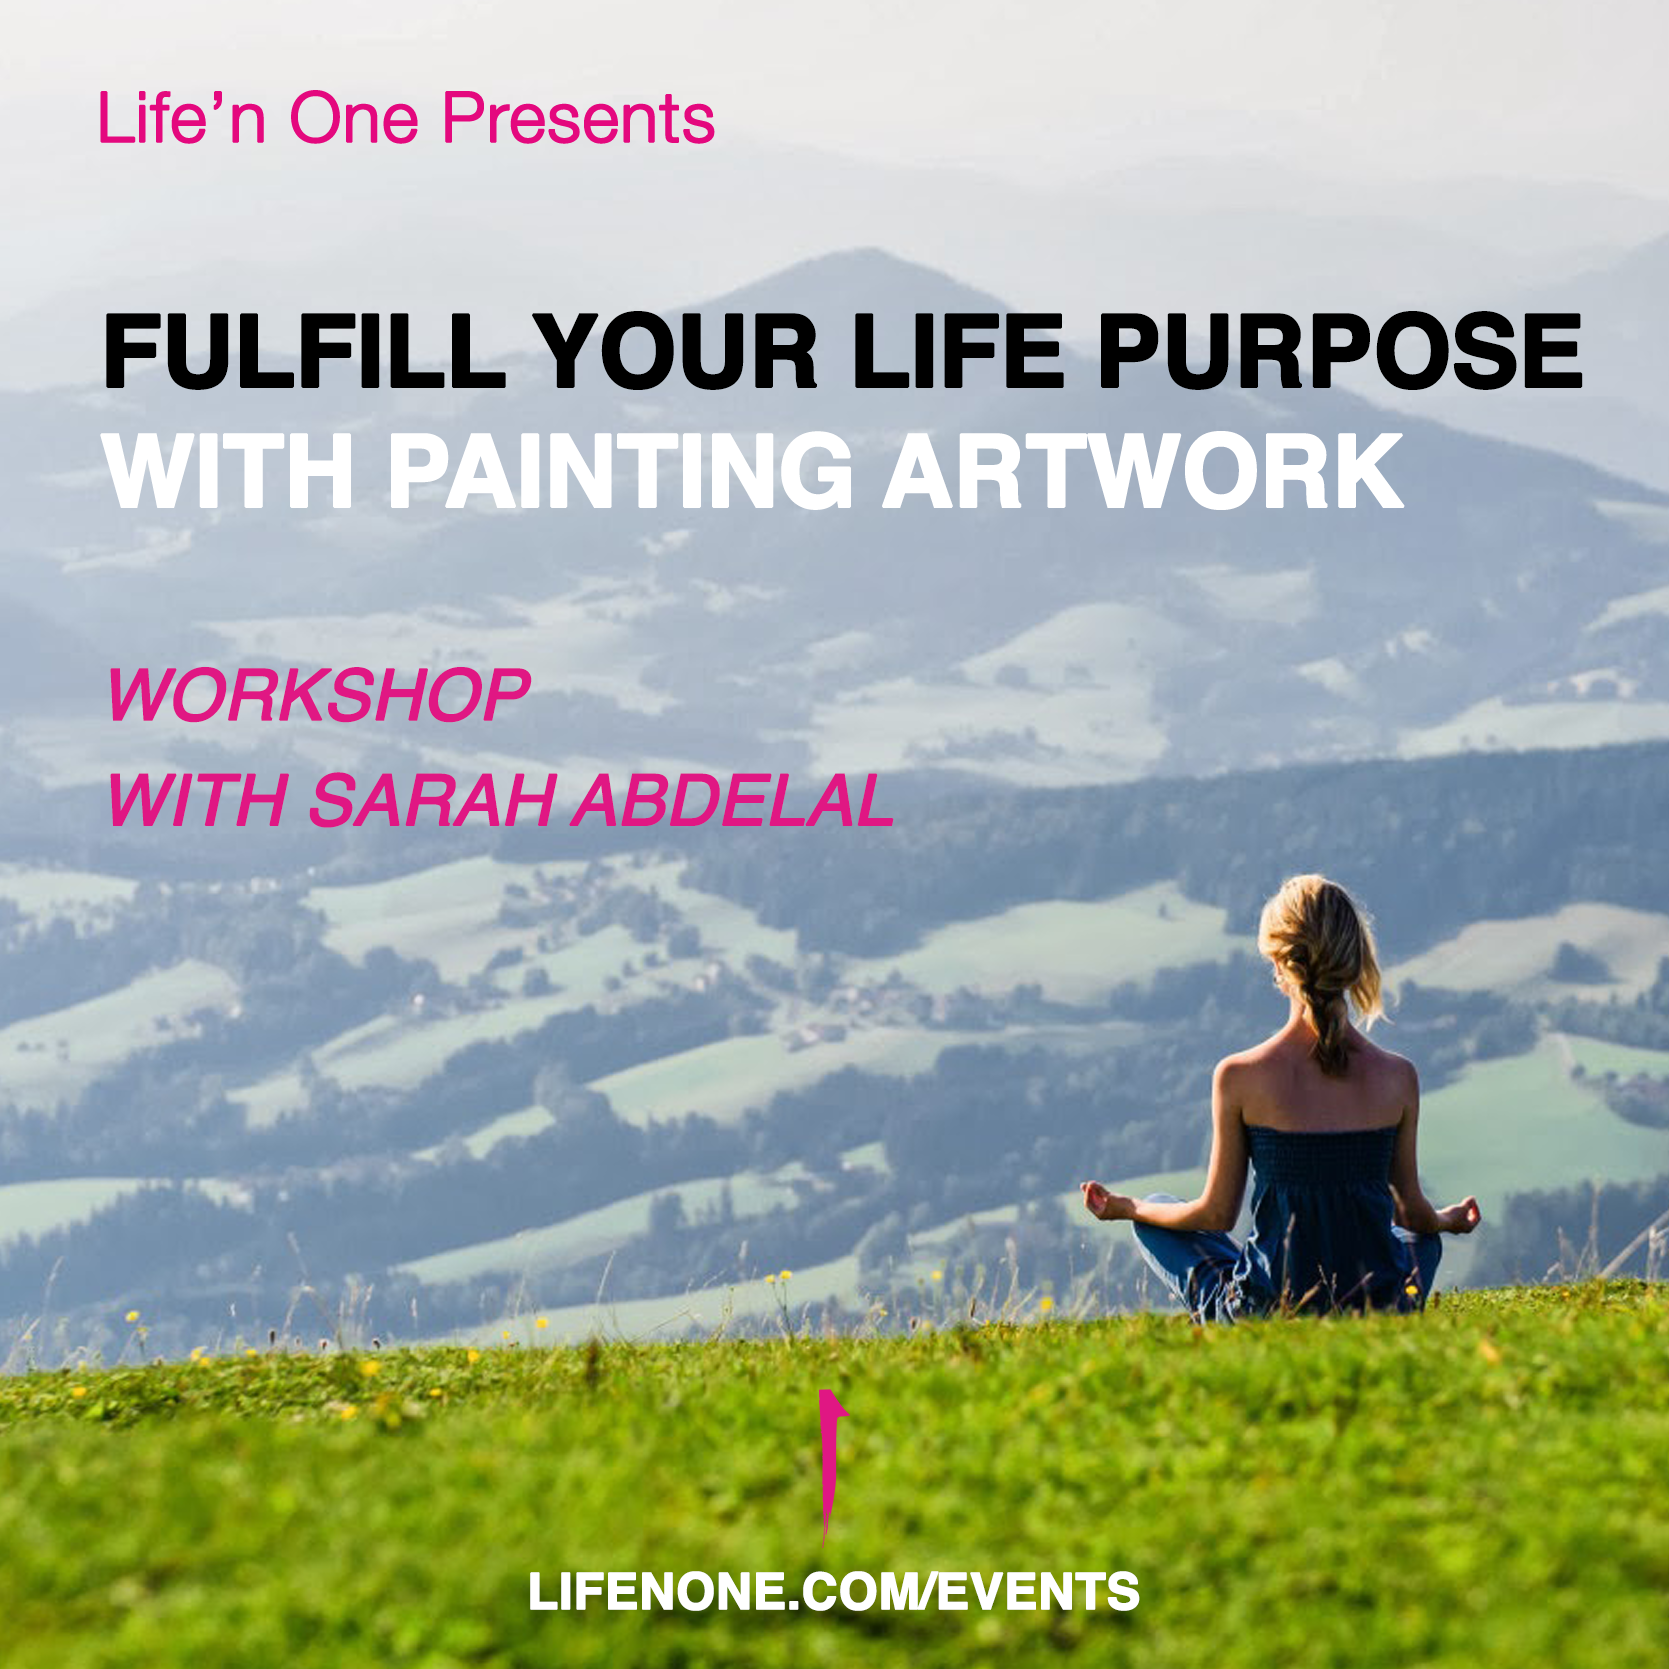 Fulfill your Life Purpose with painting artwork